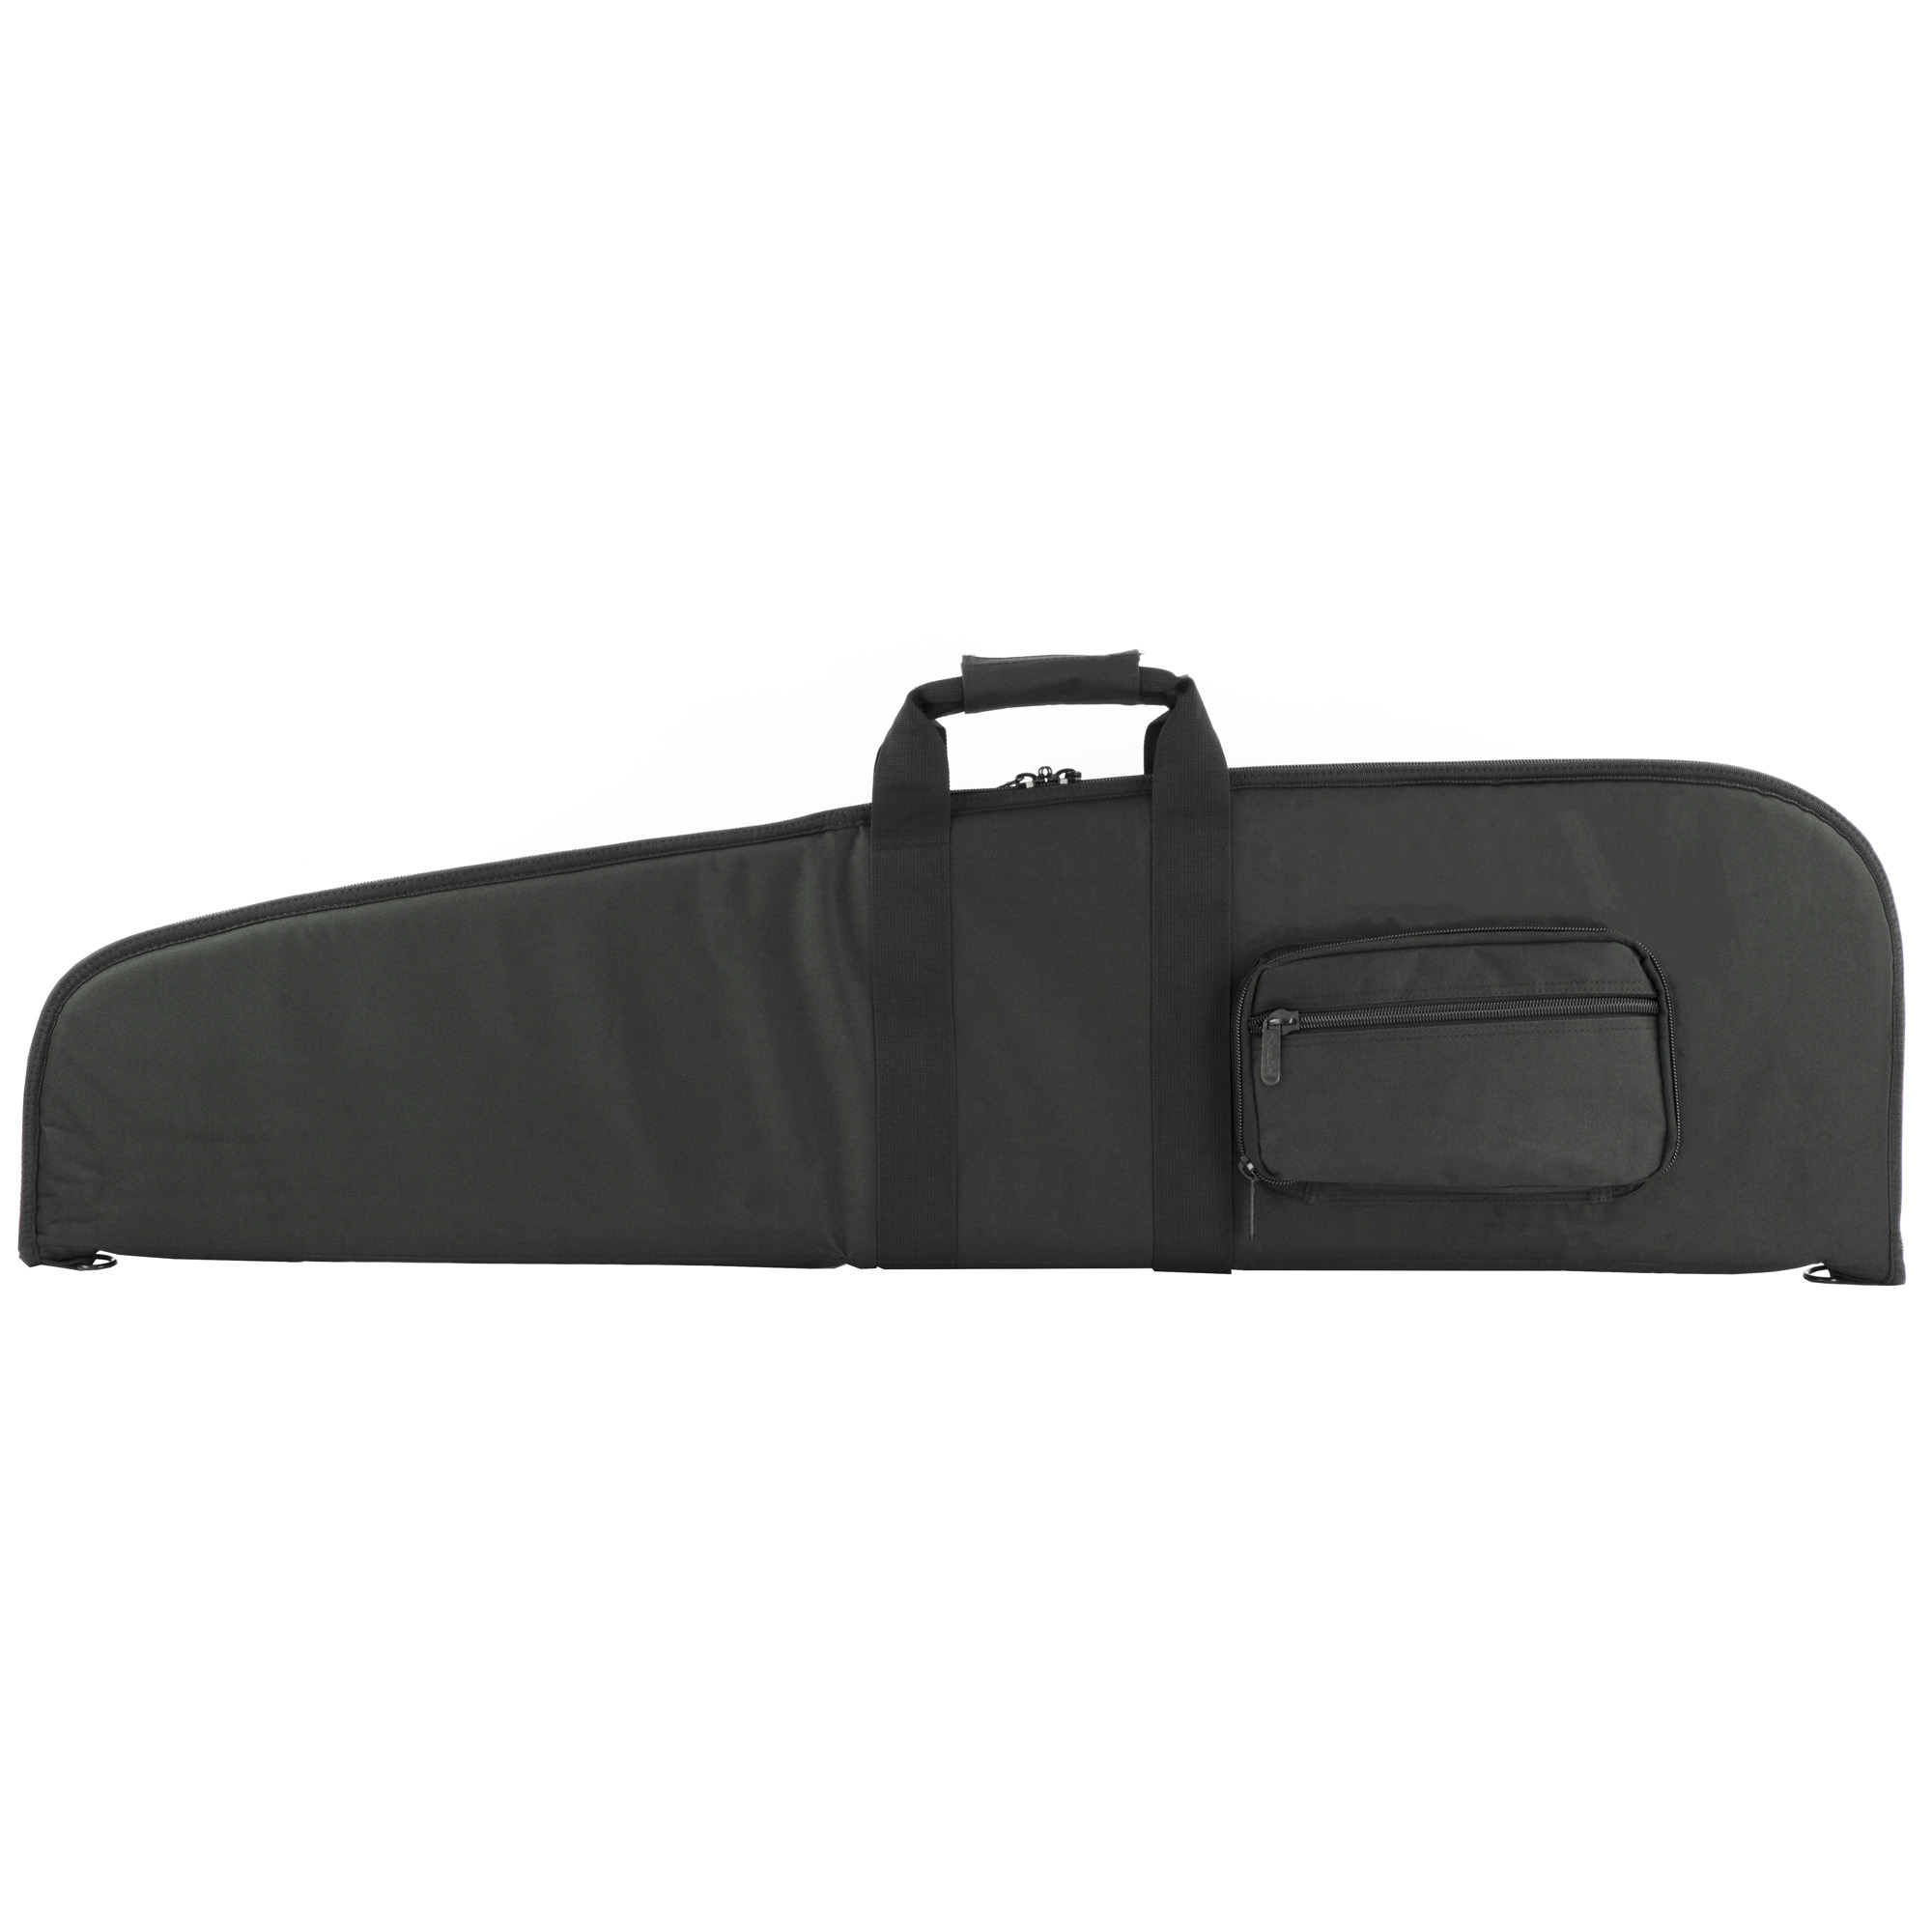 The VISM Scoped Rifle Case has high density foam inner padding for superior protection and heavy duty metal double zippers.